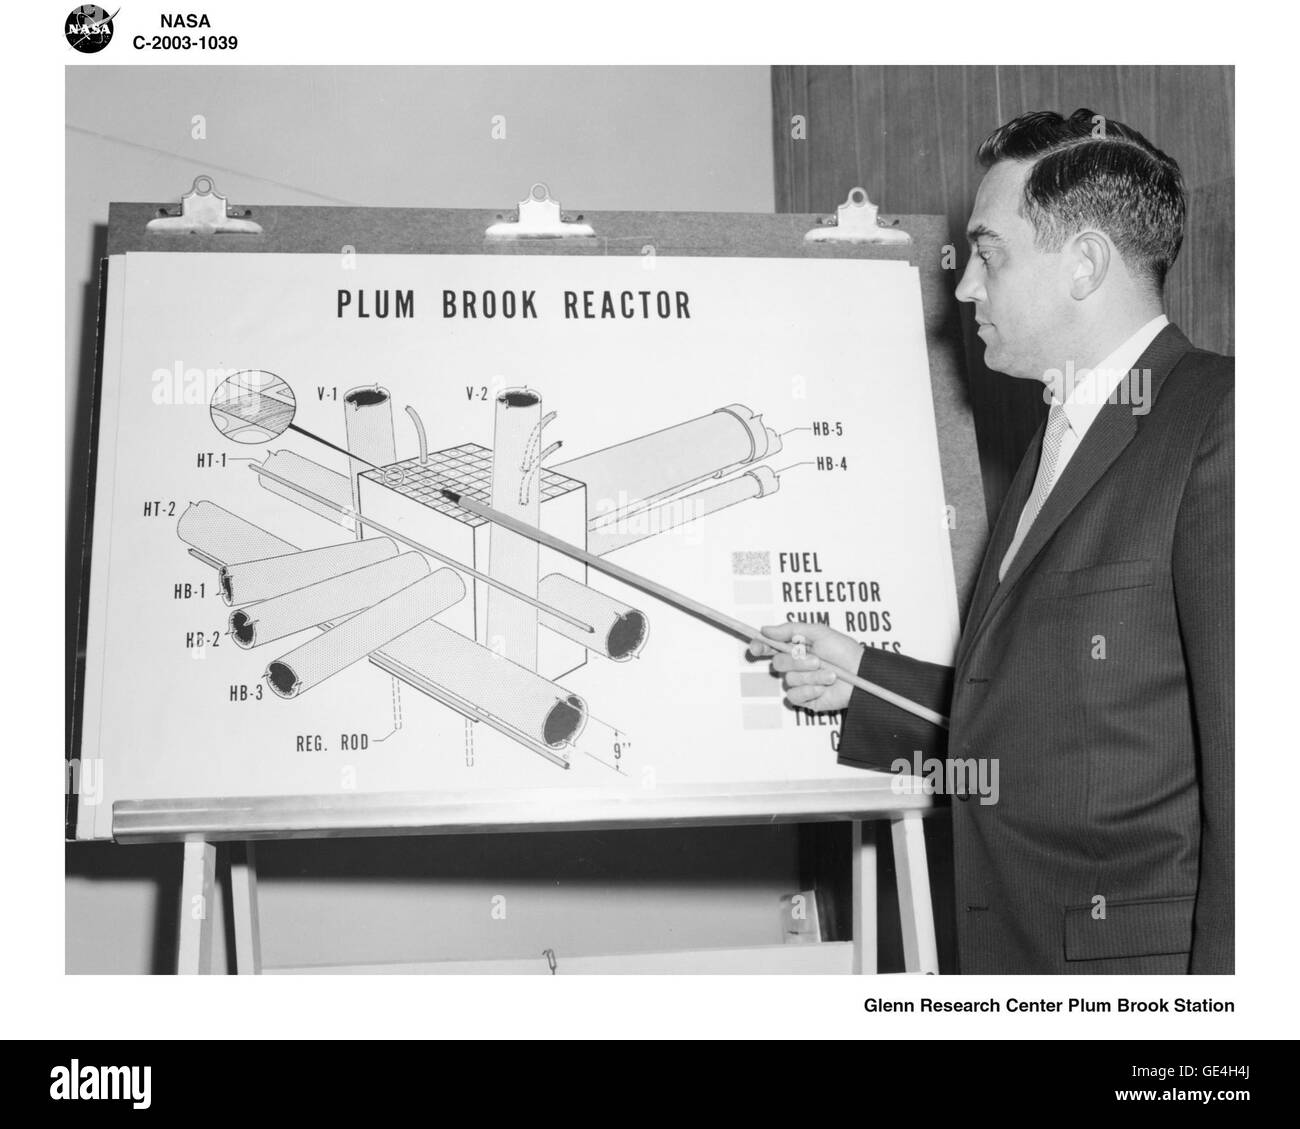 A Plum Brook representative explains a diagram showing the main elements of the Plum Brook reactor core. The numerous - Stock Image